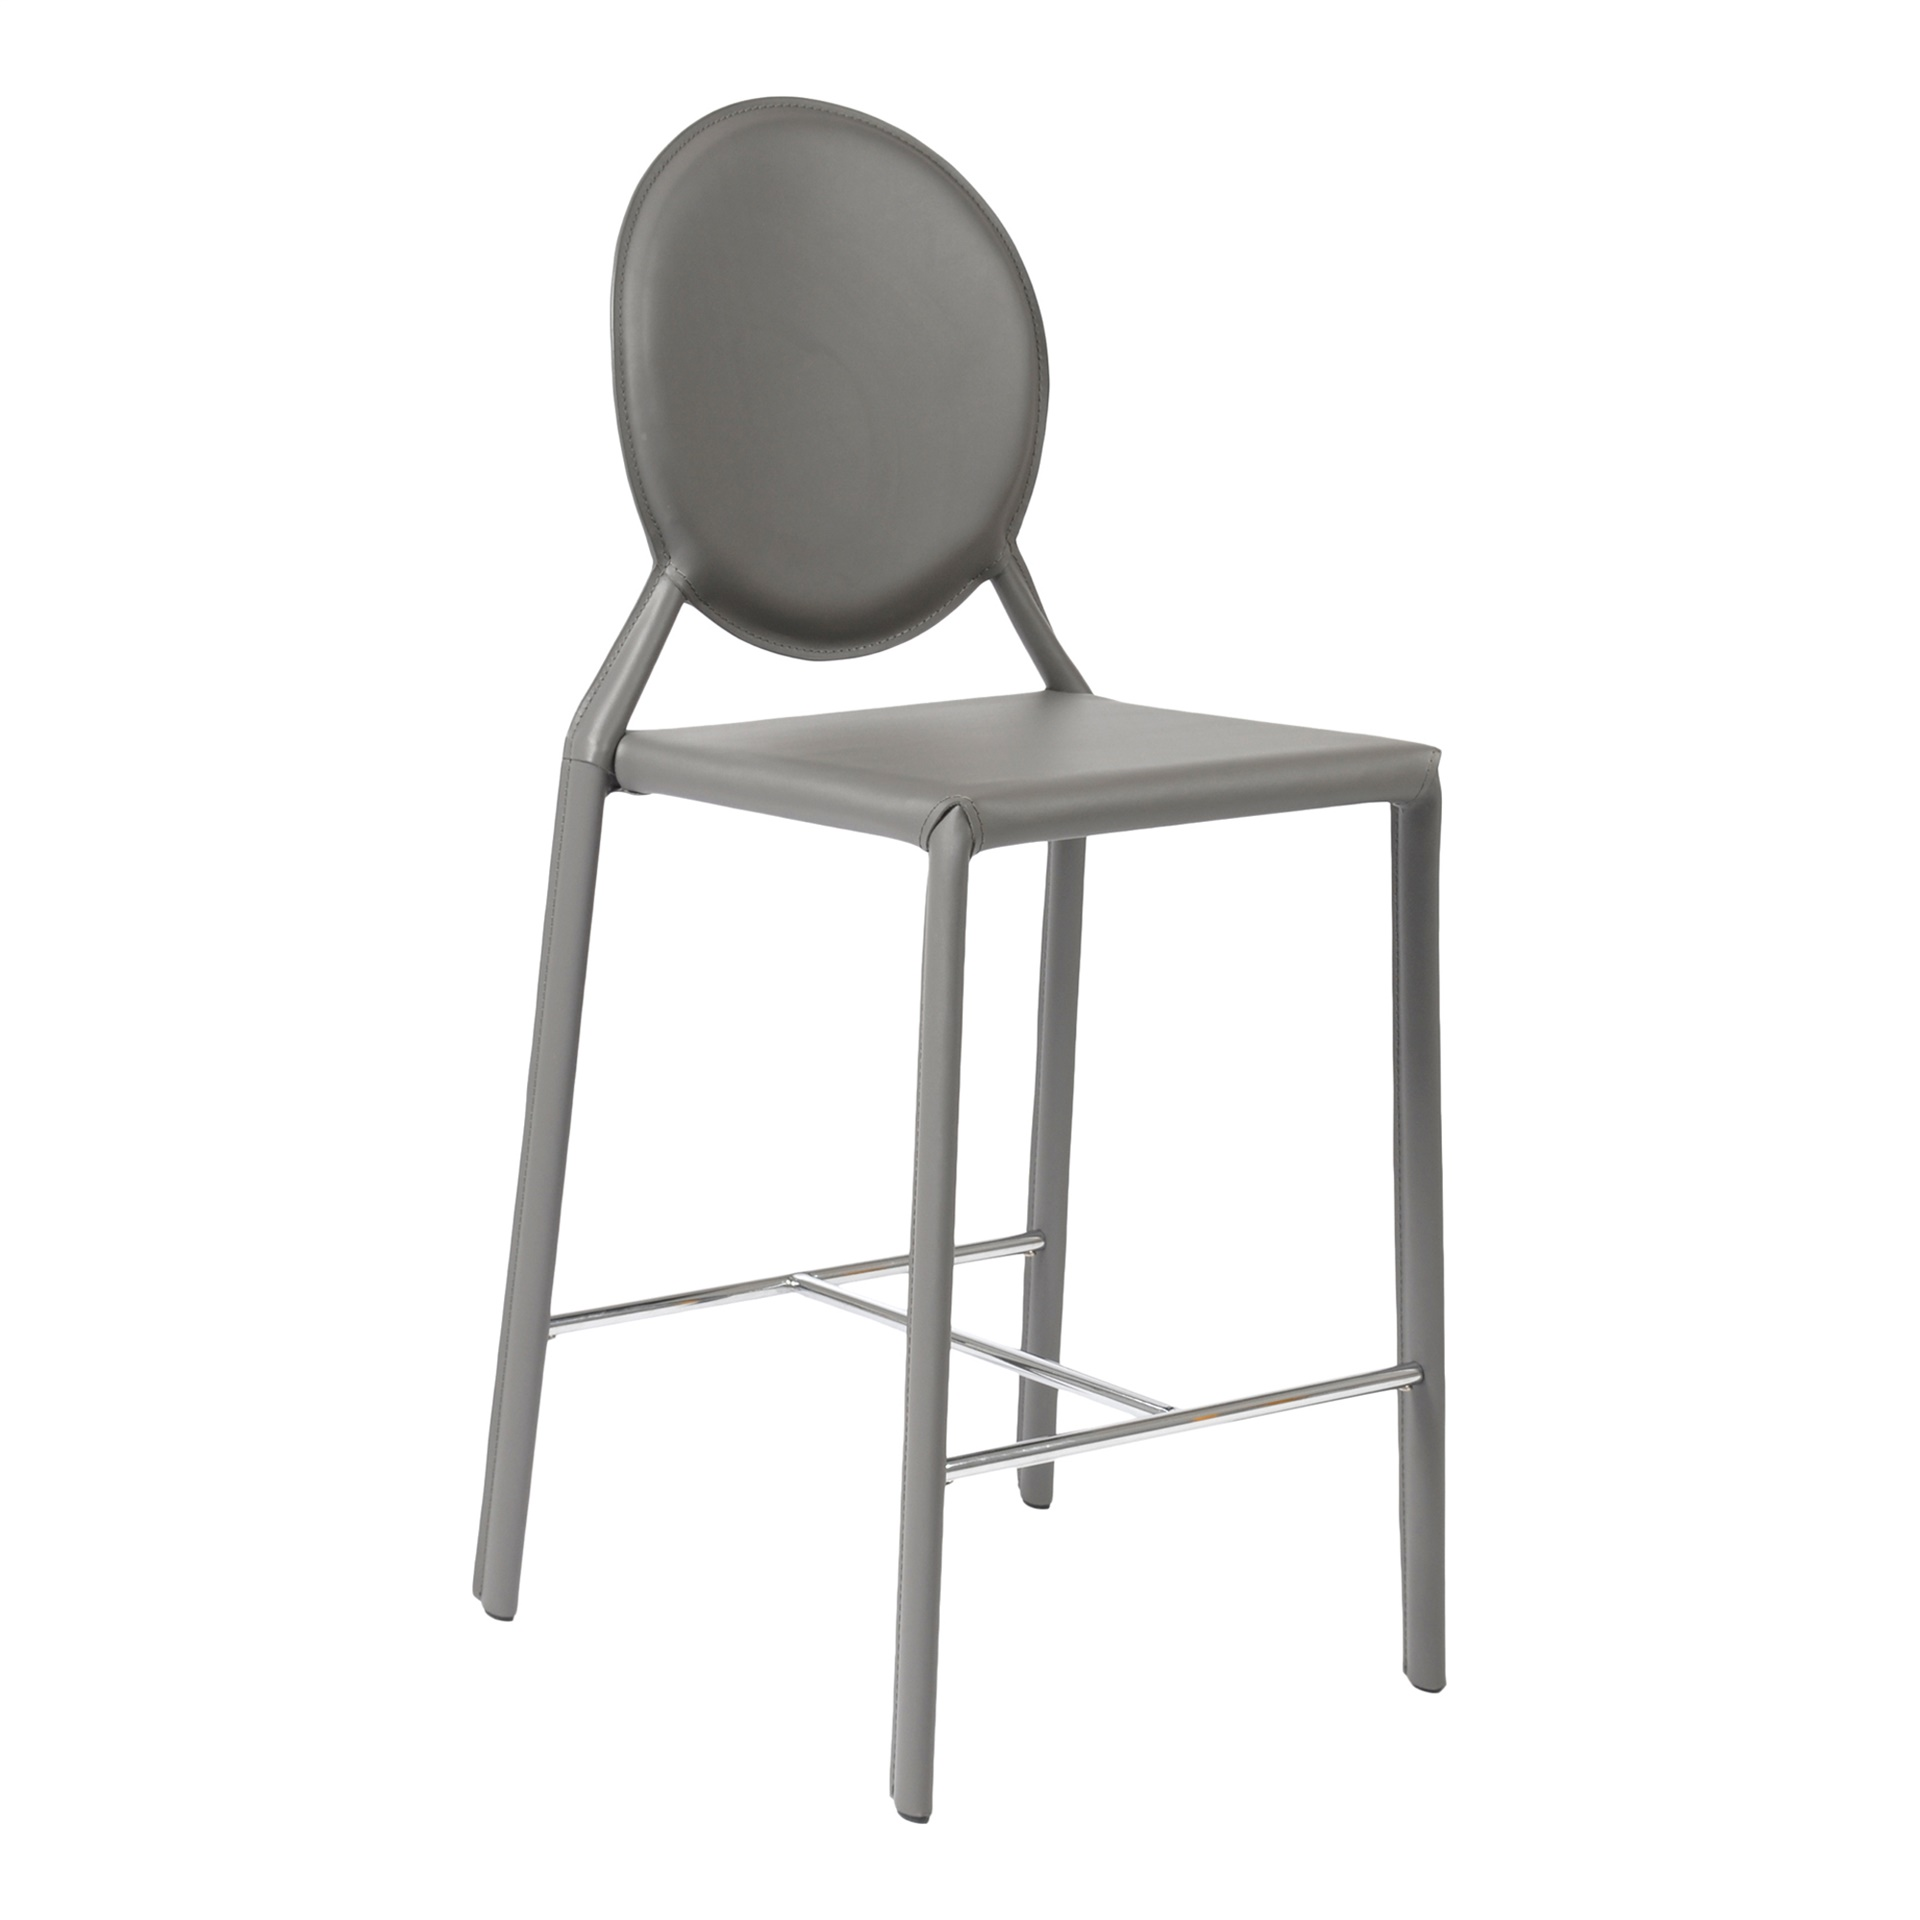 Stupendous Isabella C Counter Stool Gamerscity Chair Design For Home Gamerscityorg